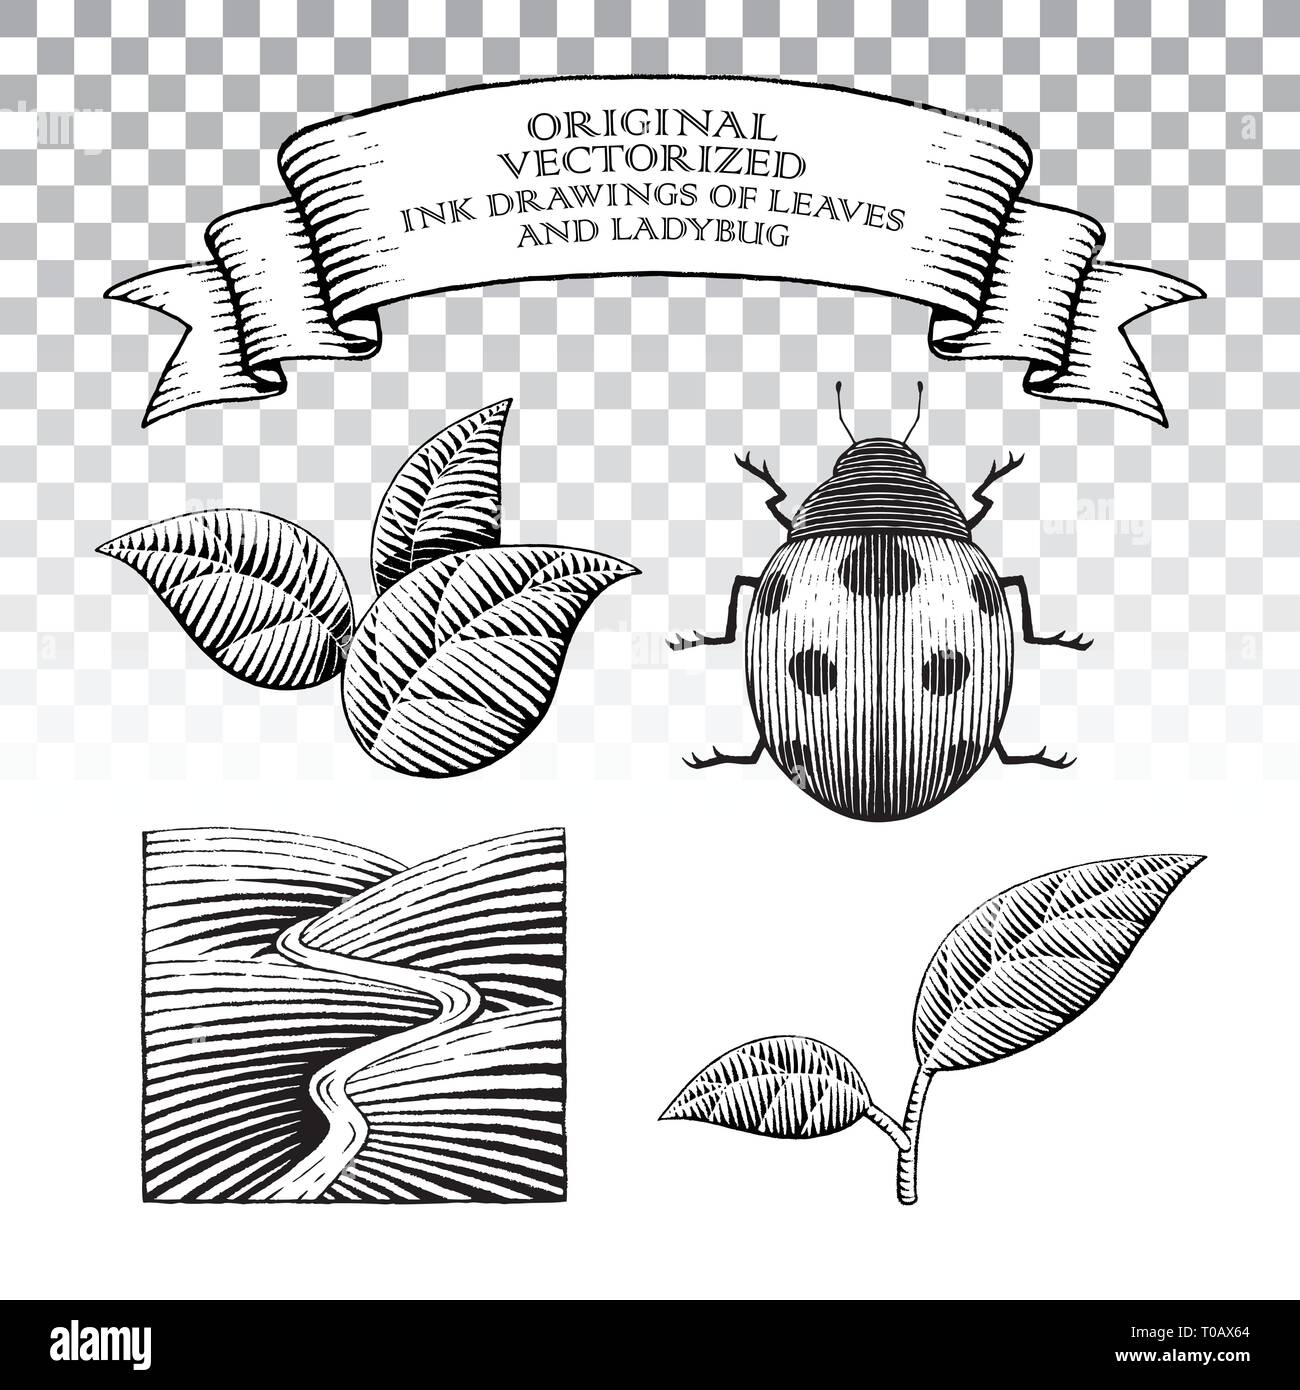 Vector Illustration of Scratchboard Style Ink Drawings of Leaves and Ladybug - Stock Vector